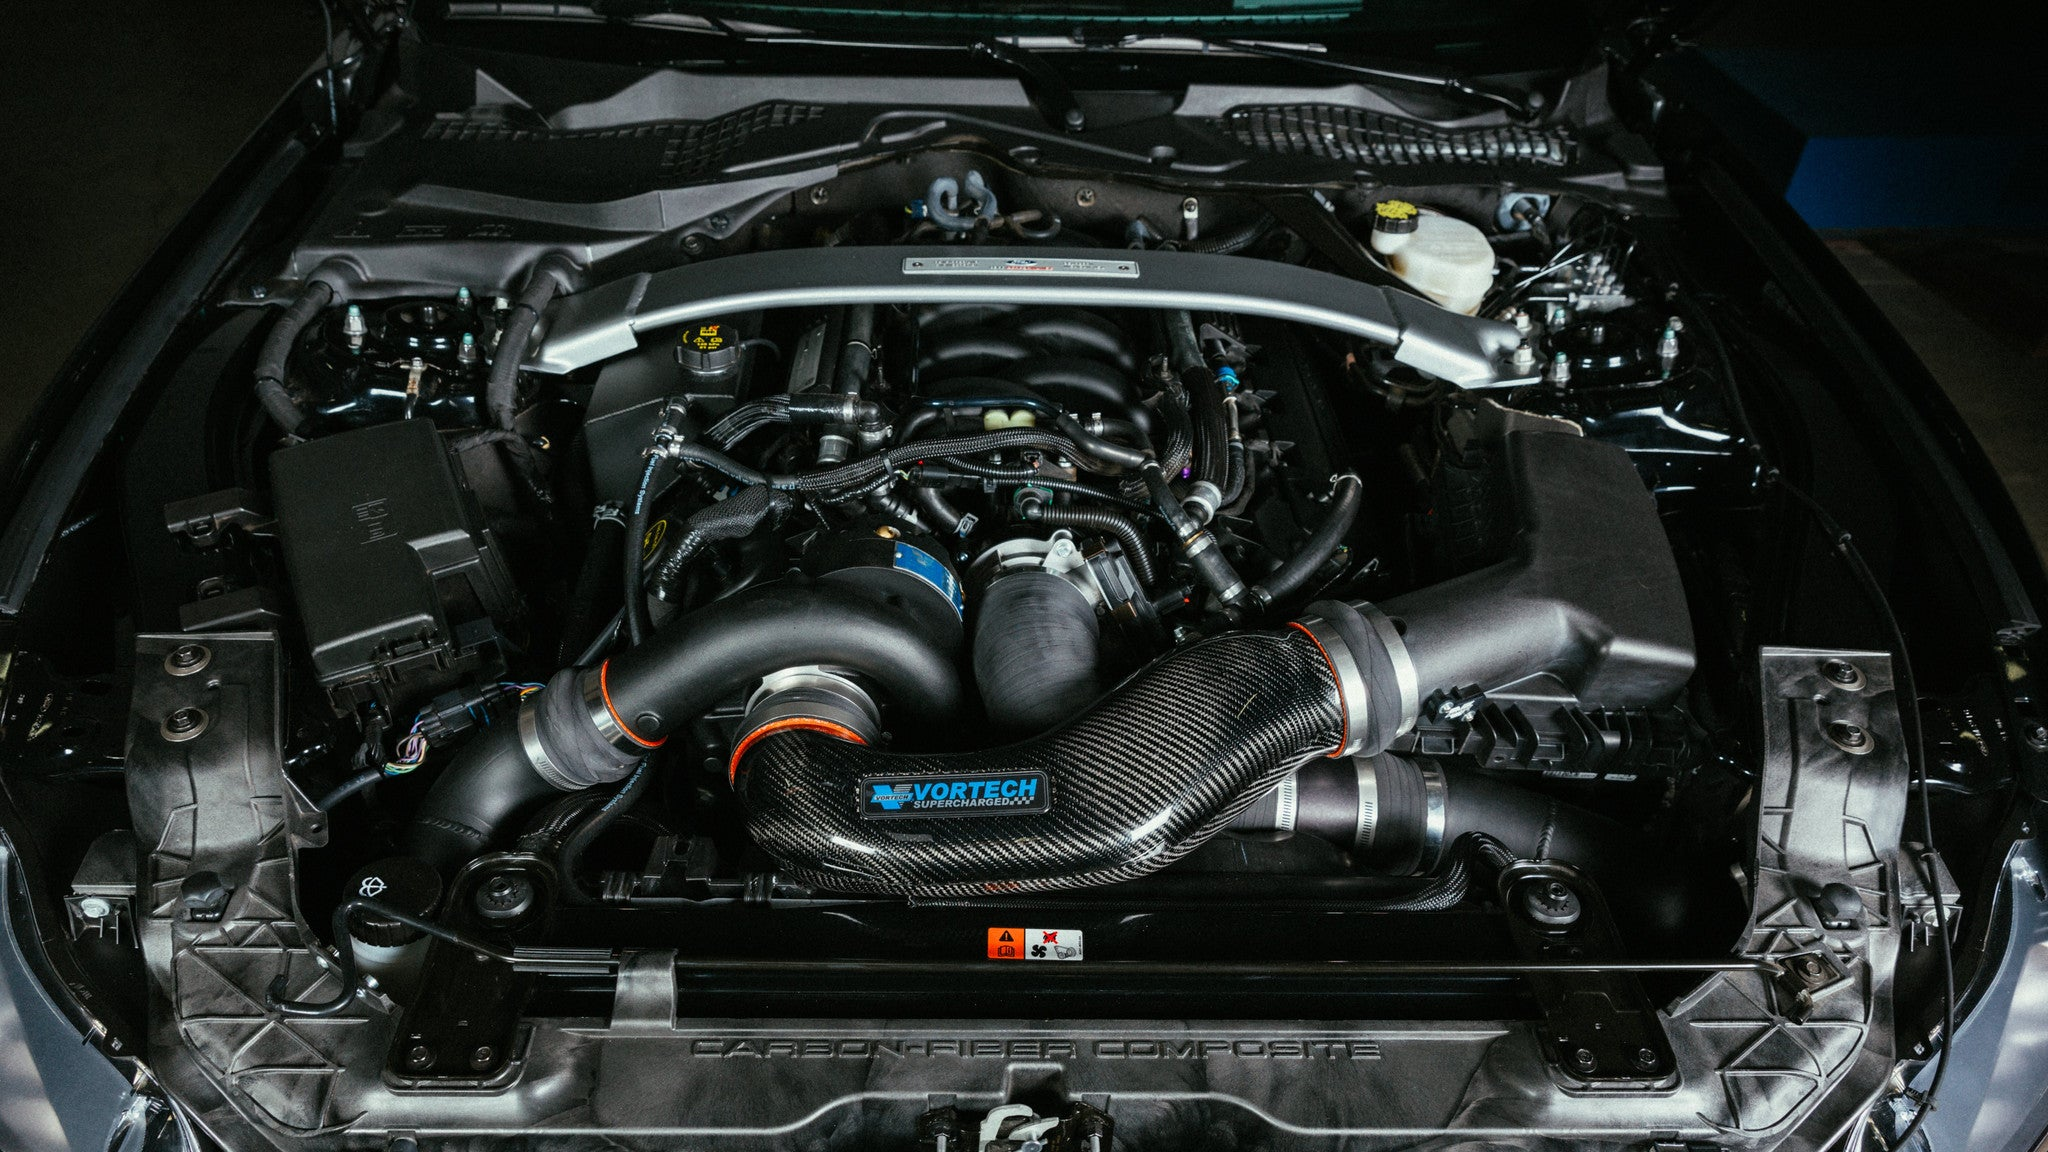 Vortech Superchargers 2016 Ford 5 2L Mustang GT350 Complete